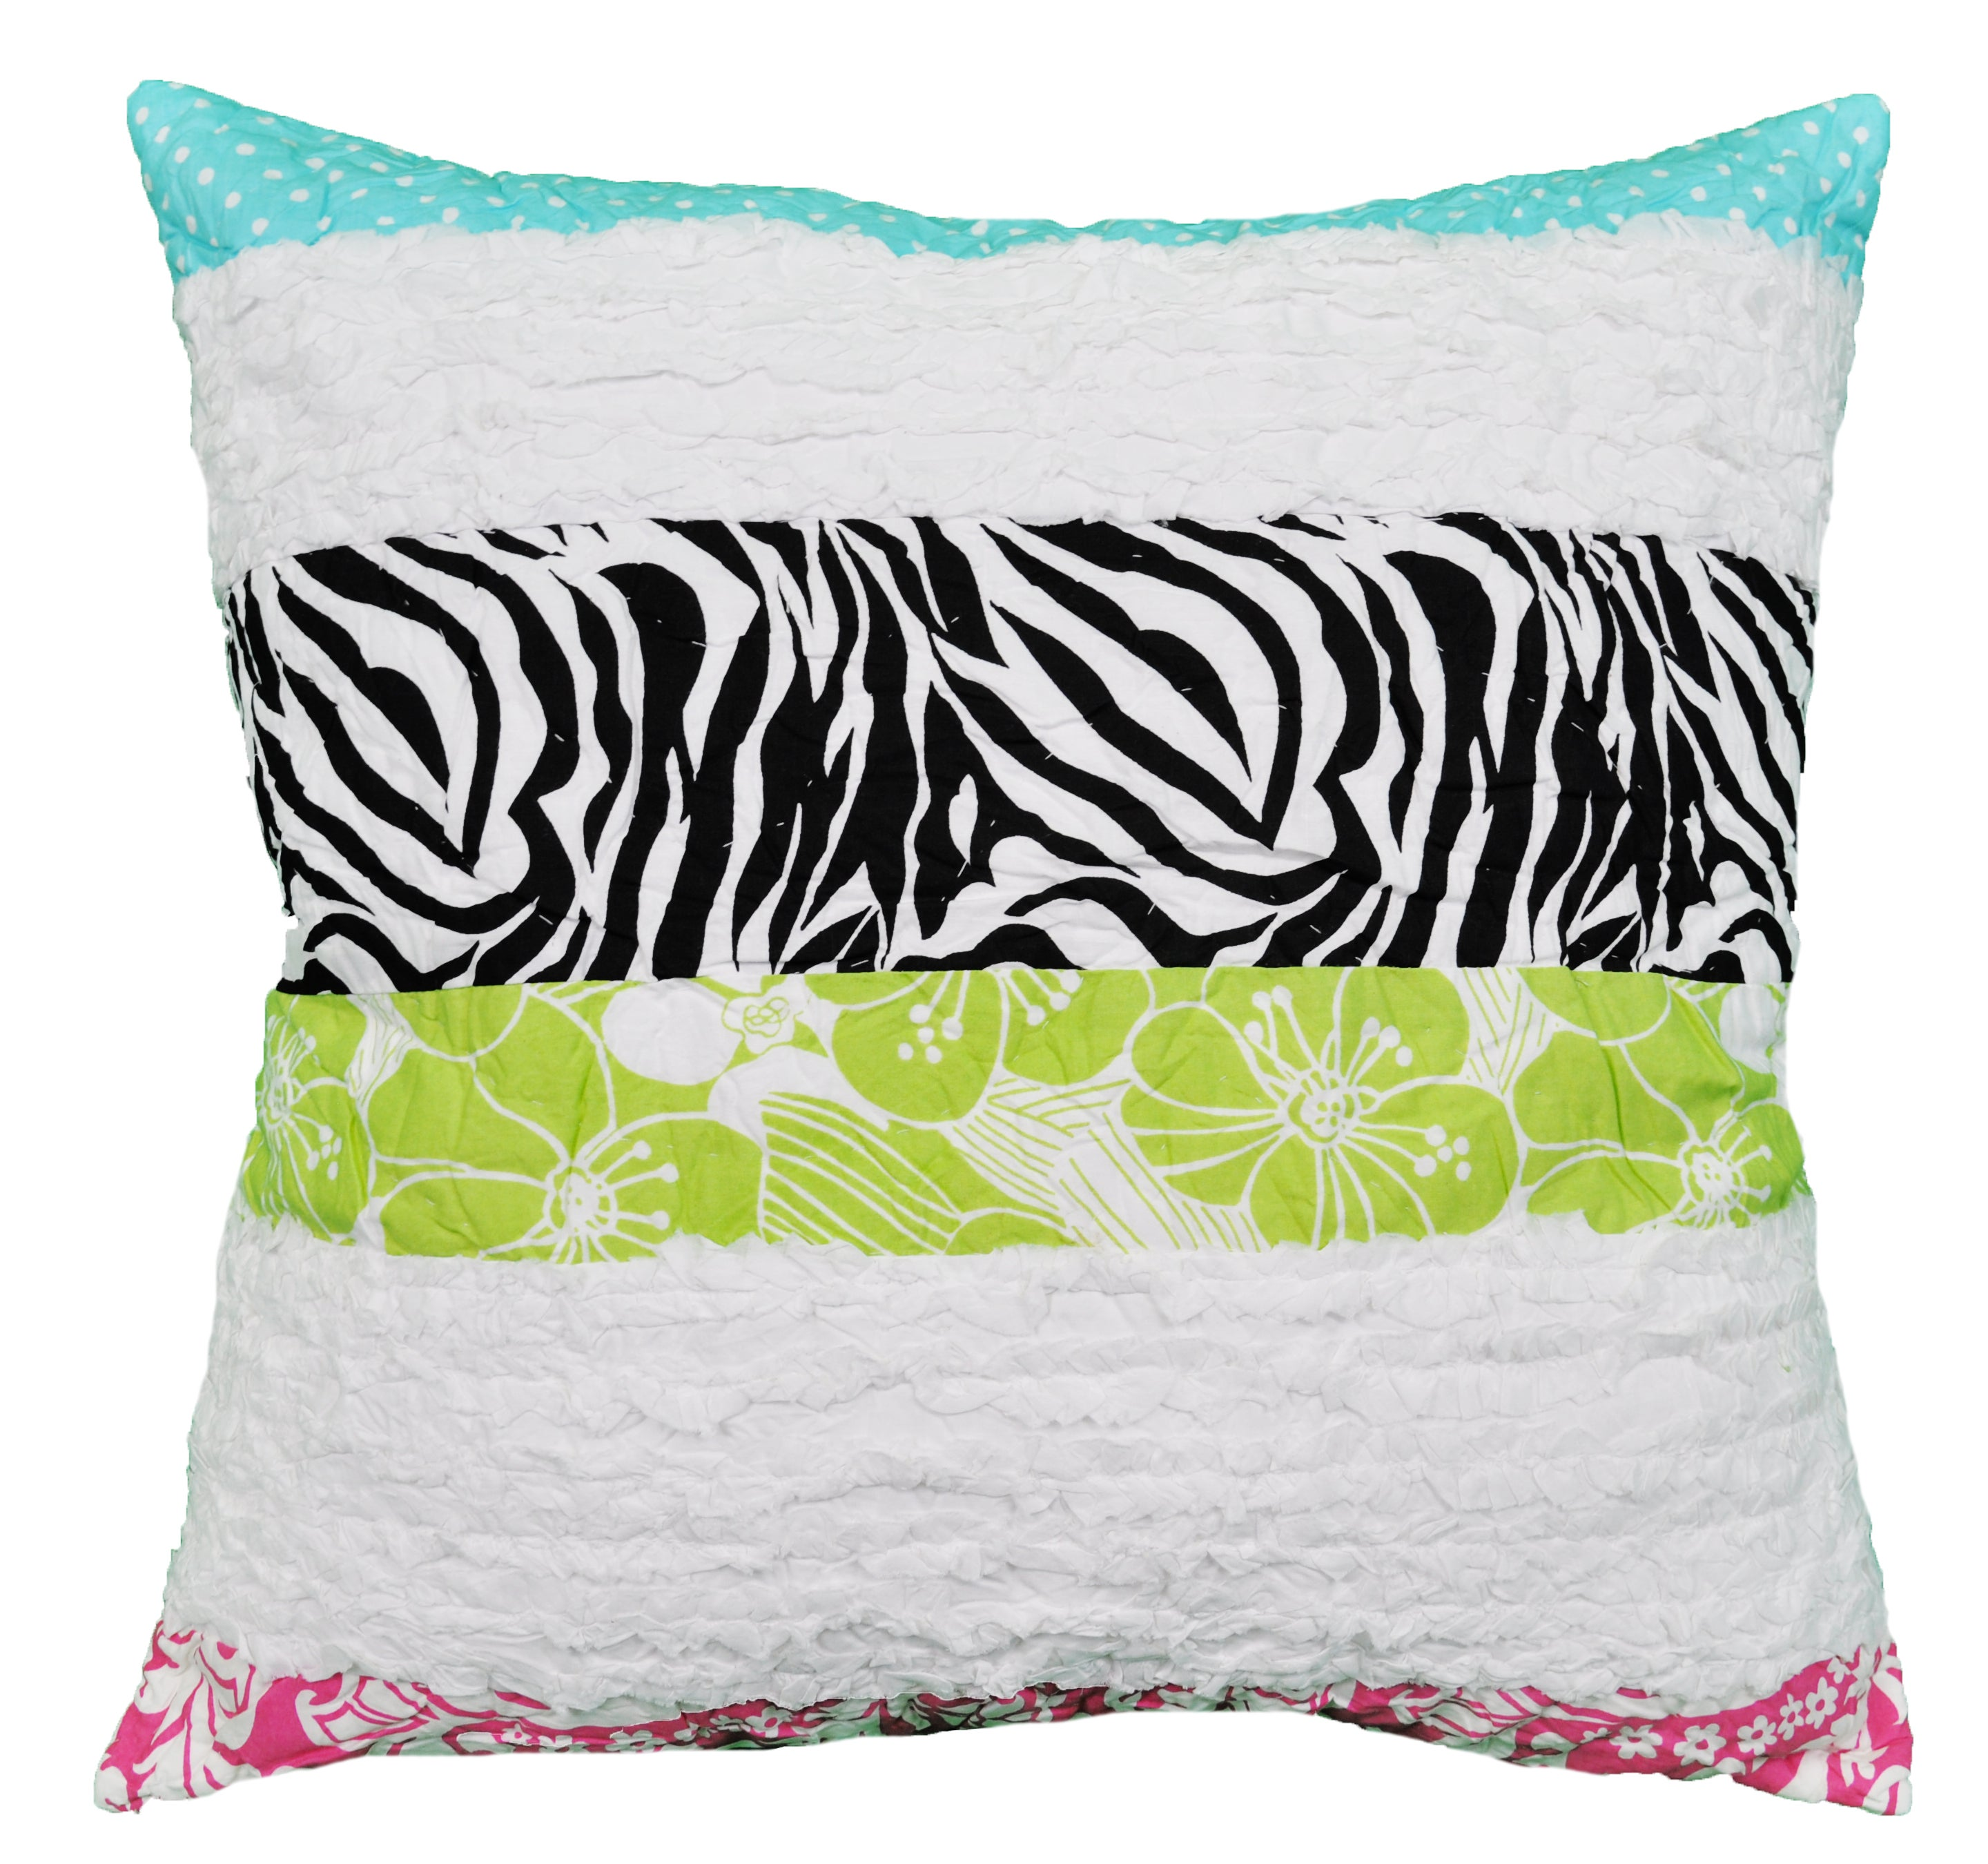 Lacey's Striped Ruffle Decorative Pillow